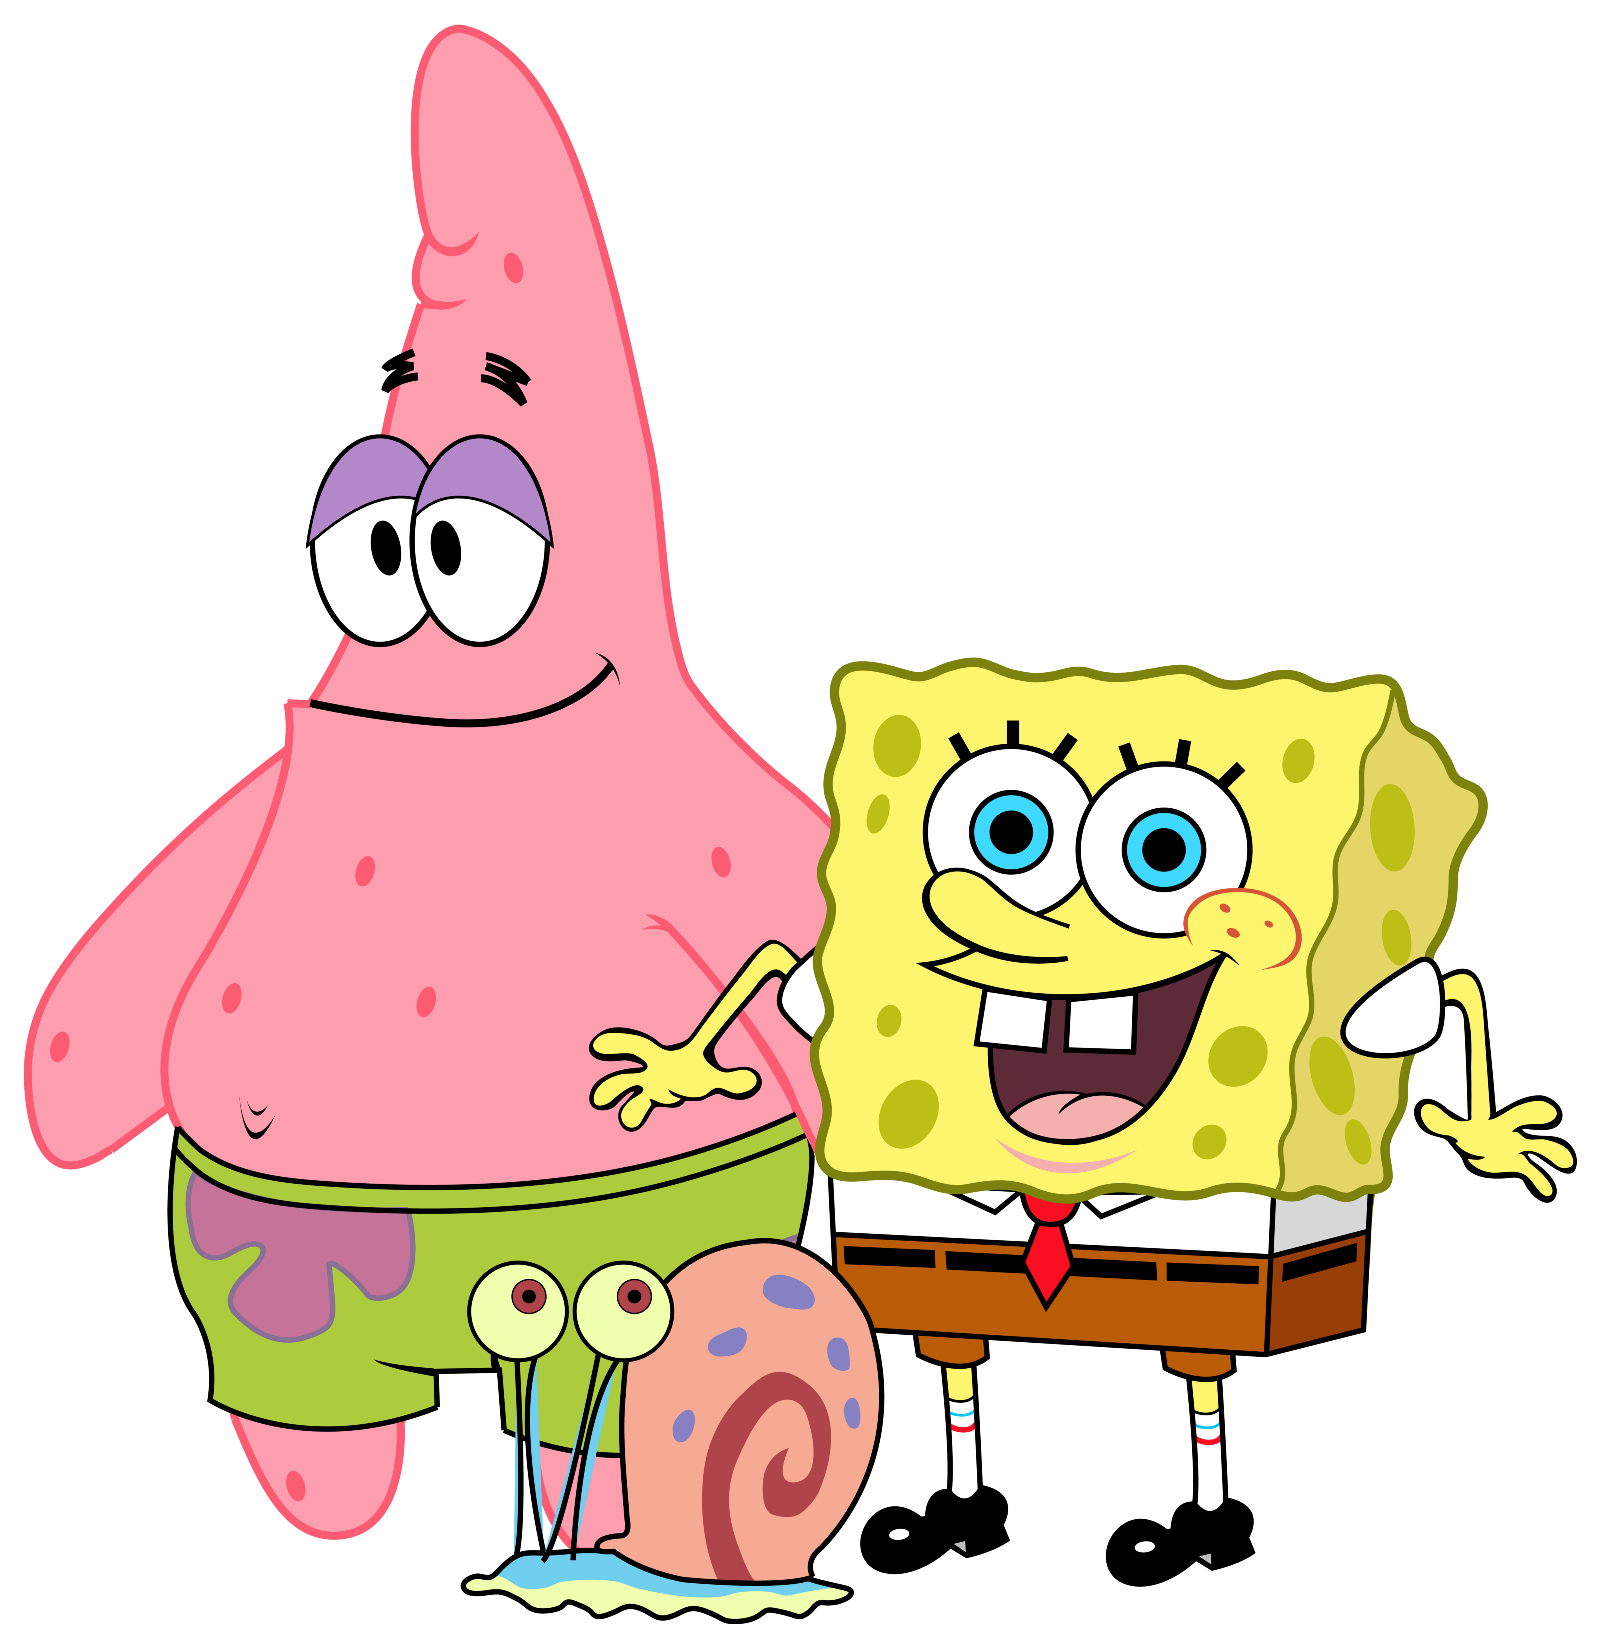 Spongebob house clipart clip free Spongebob Patrick Clipart at GetDrawings.com | Free for personal use ... clip free